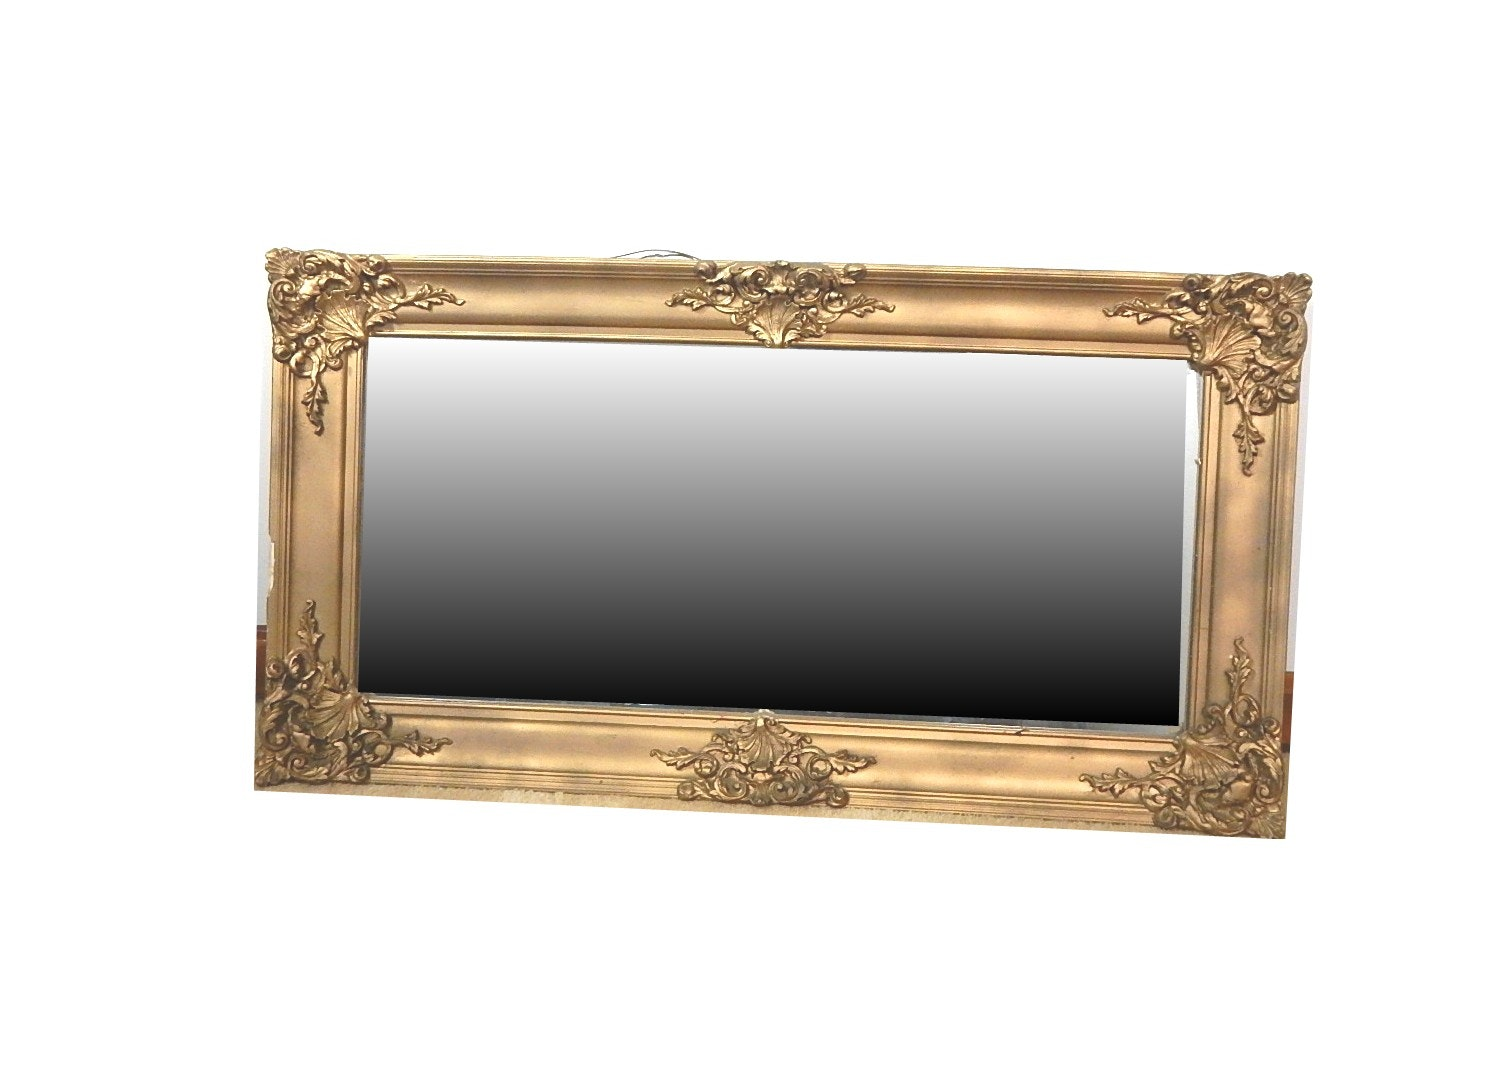 Rectangular Wood and Gesso Wall Mirror